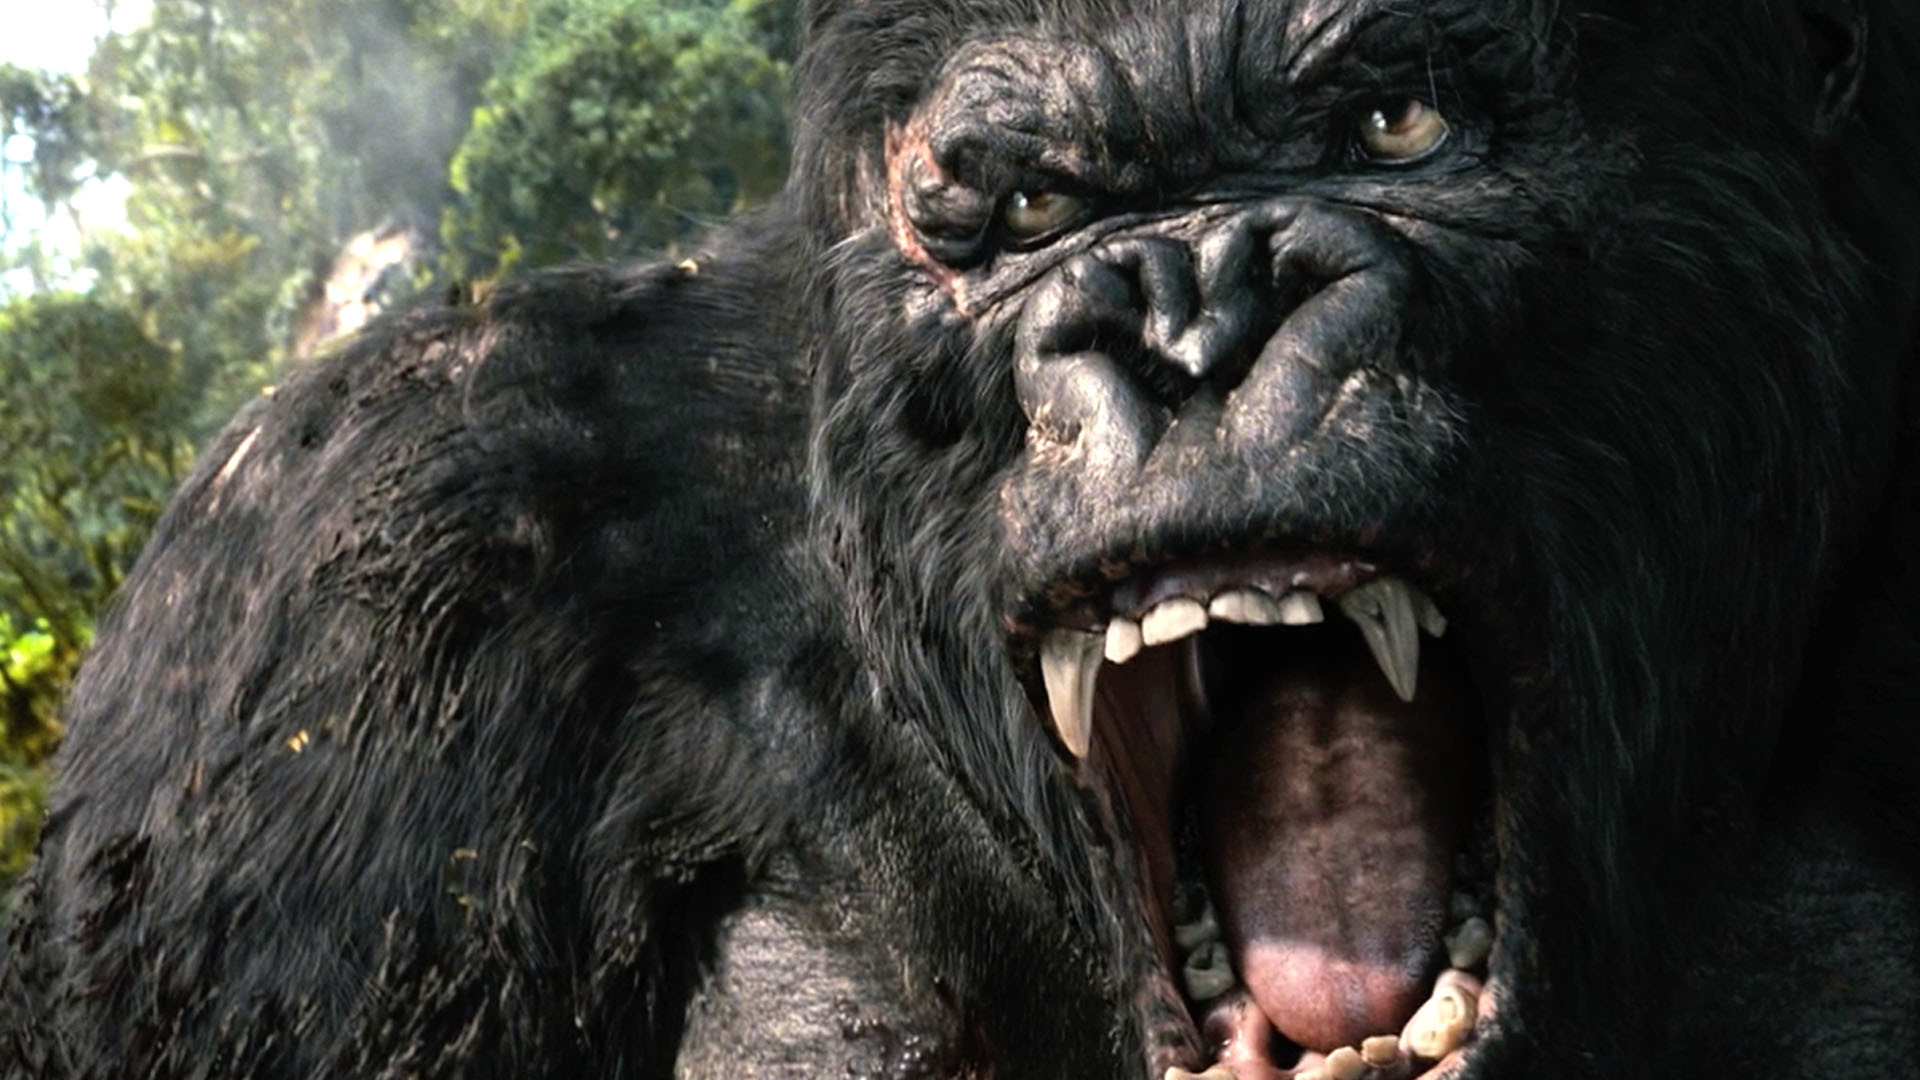 King kong wallpaper 67 images - King kong 2005 hd wallpapers ...